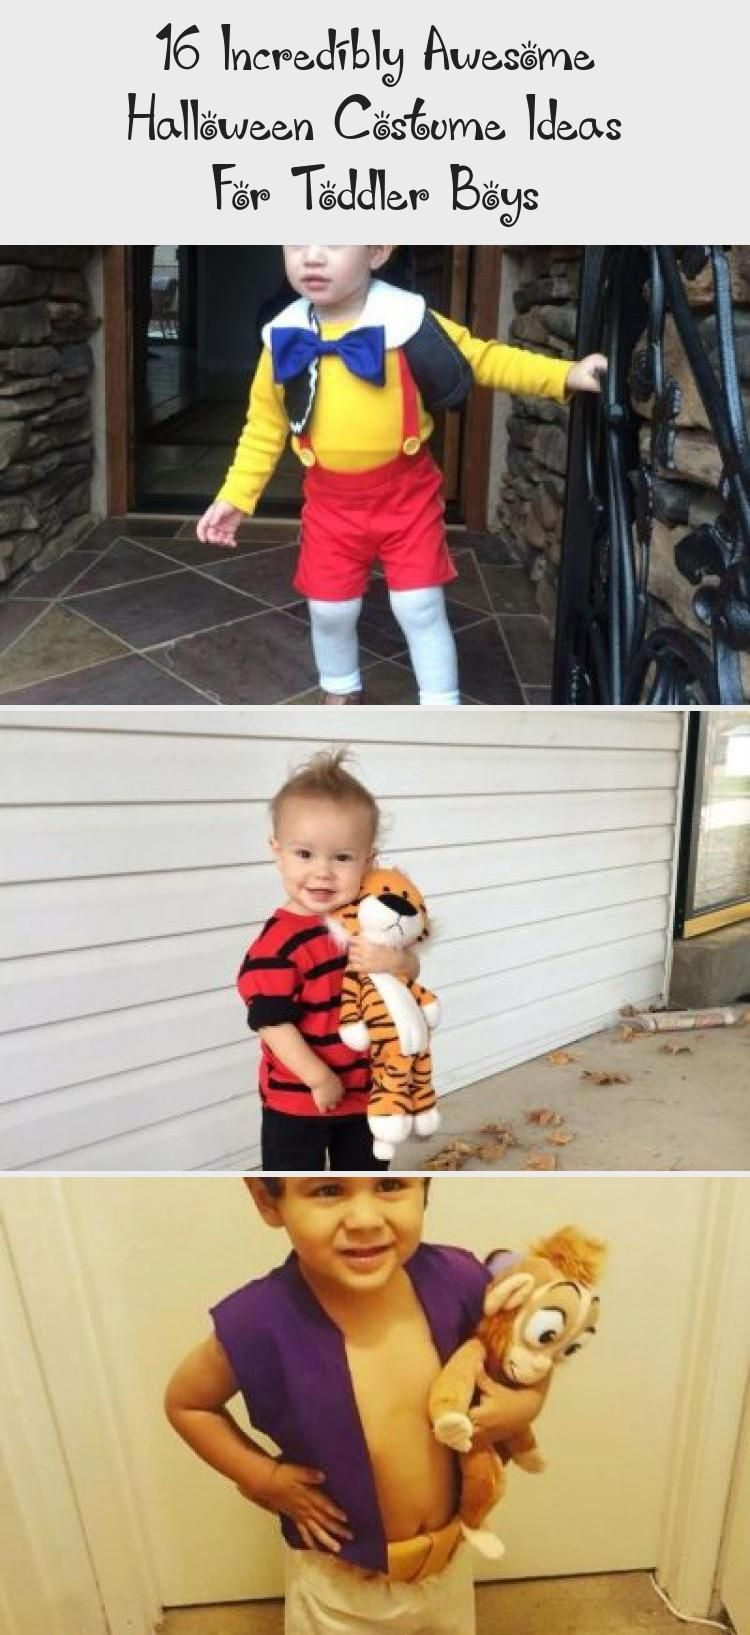 16 Incredibly Awesome Halloween Costume Ideas For Toddler